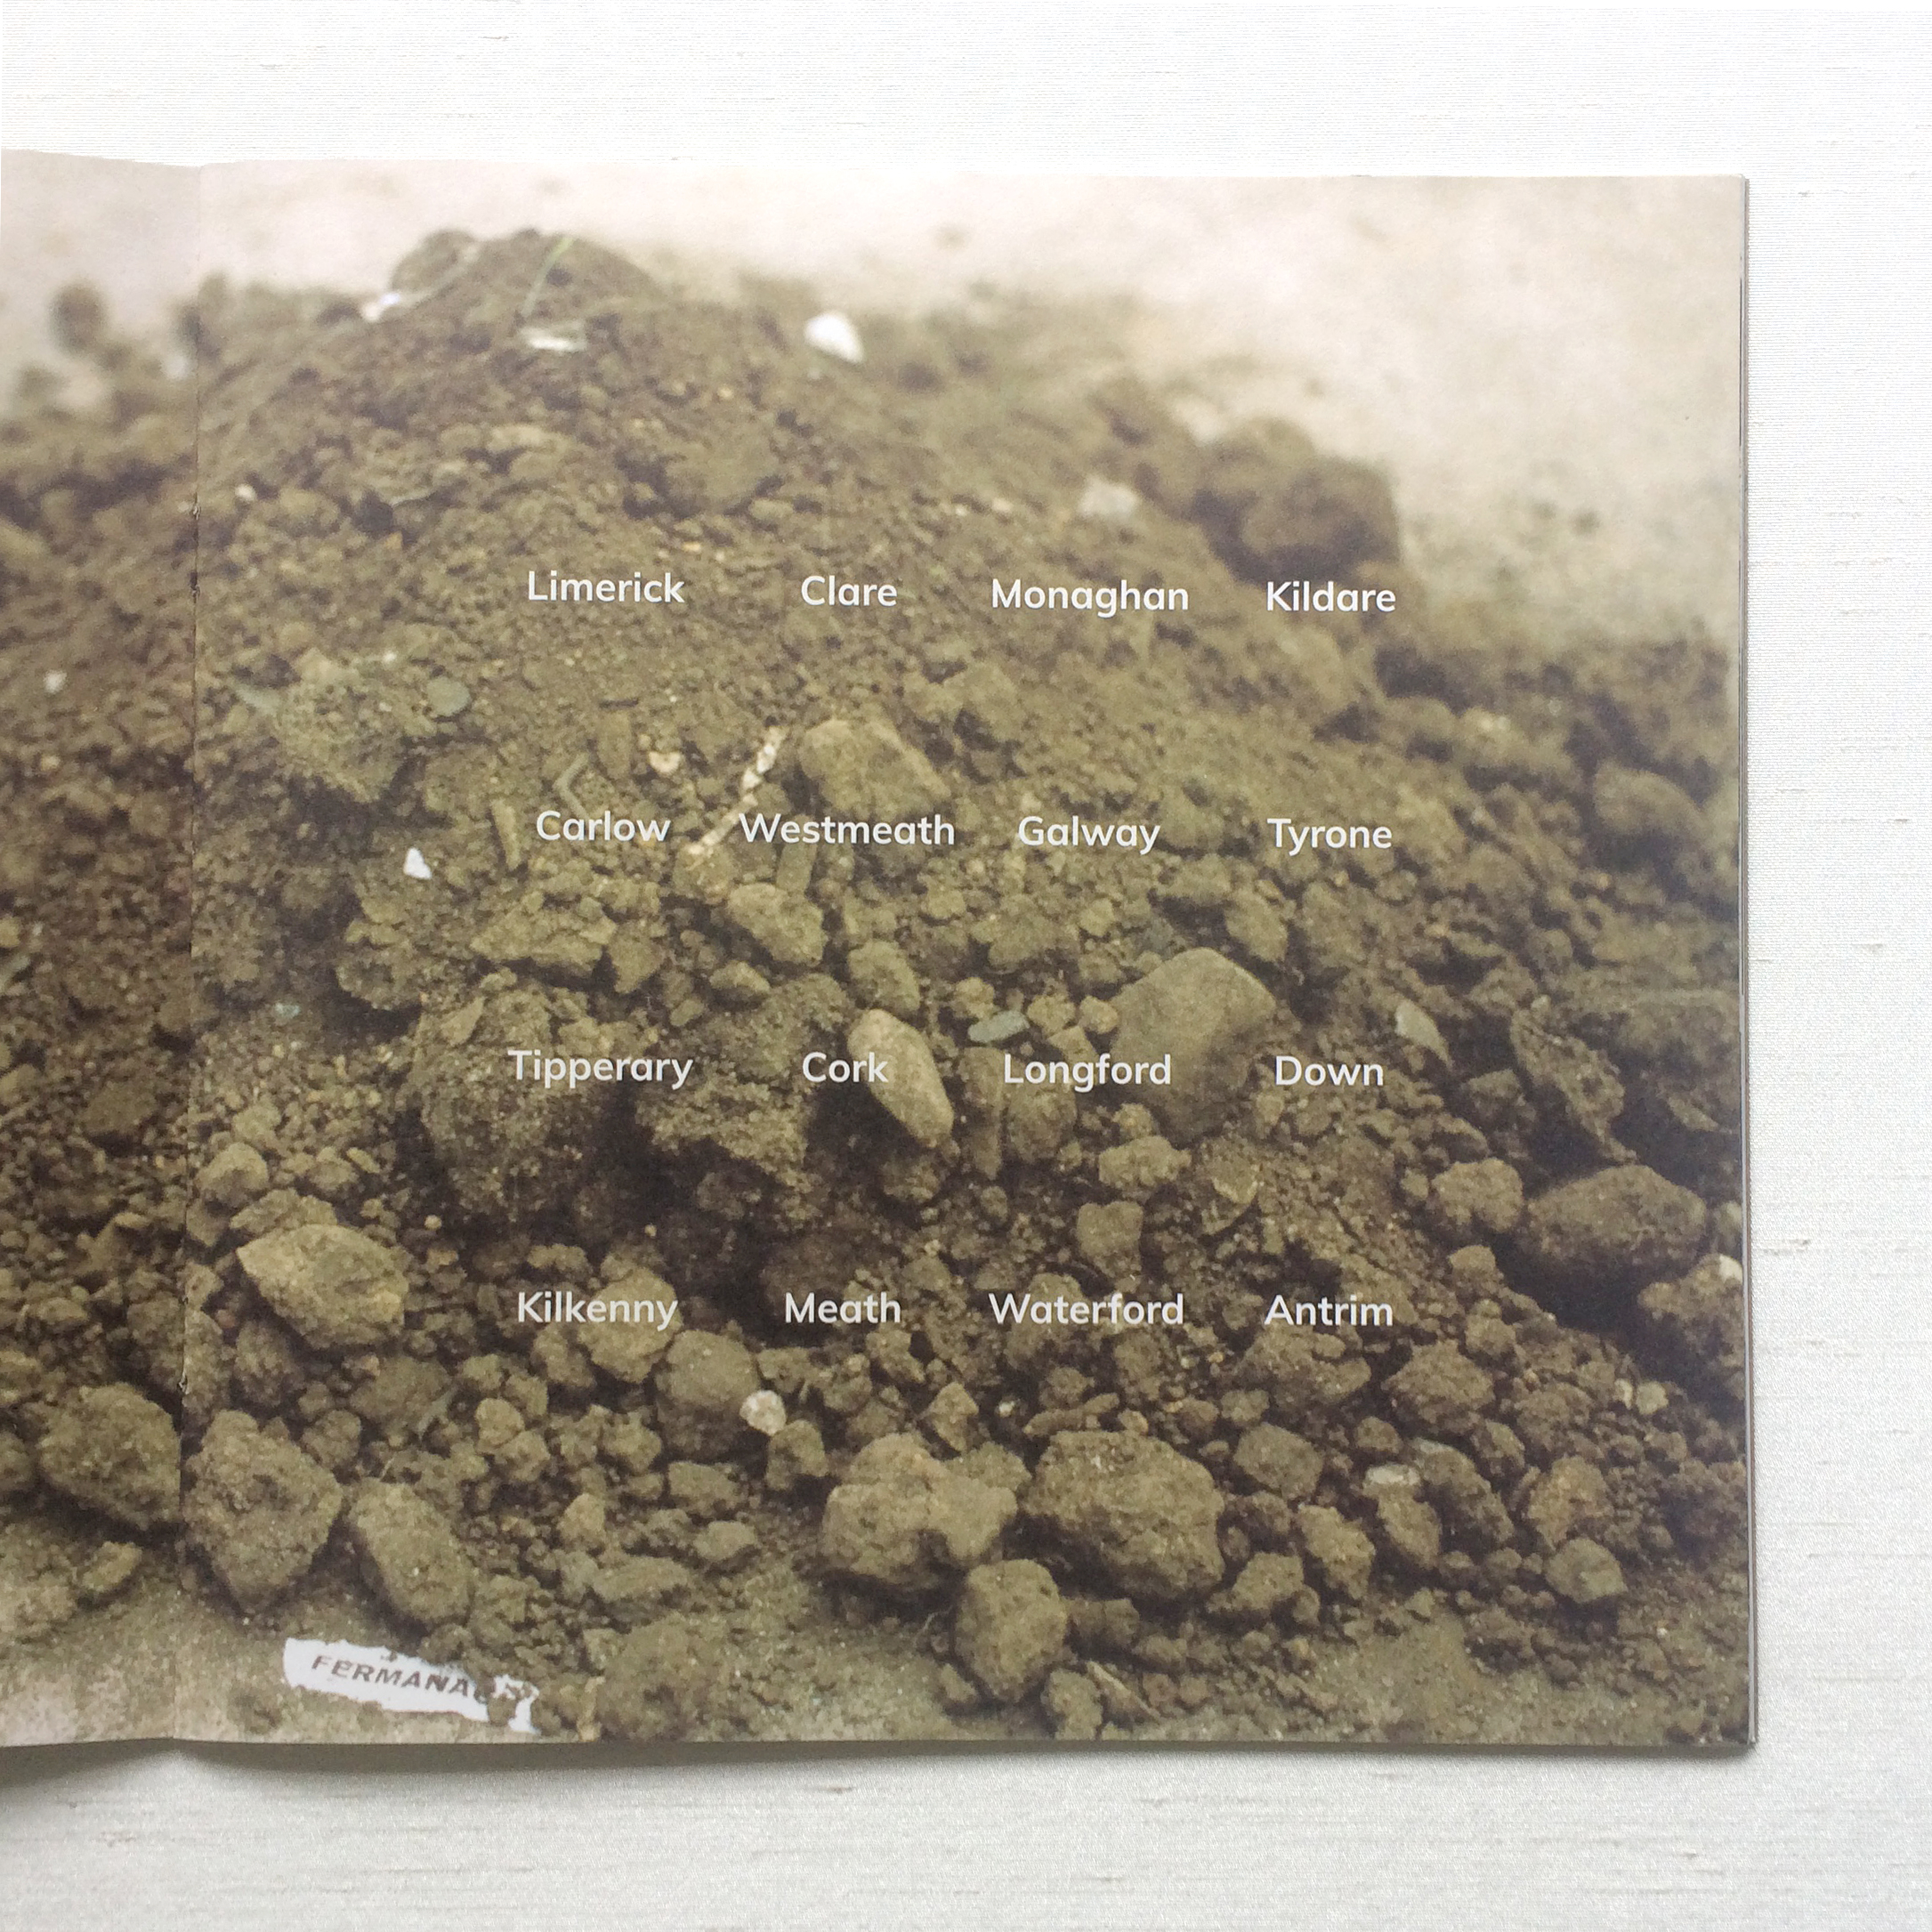 Soil from 32 counties of Ireland - Artist Patricia McKenna Soil art project